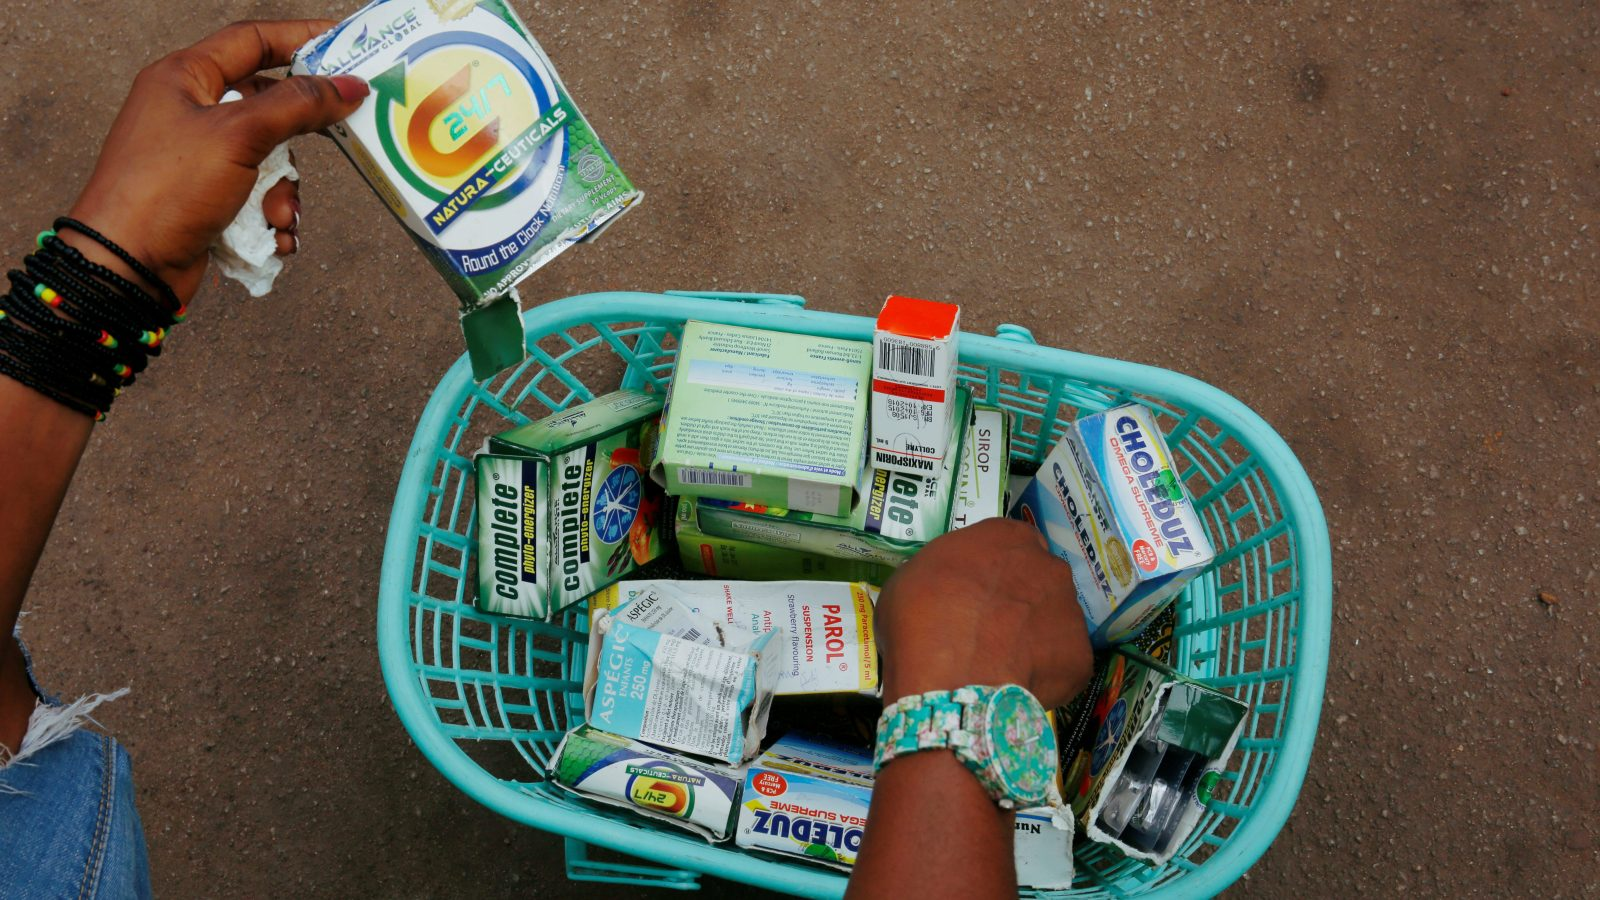 qz.com - Amindeh Blaise Atabong - African healthcare systems are in an arms race with a rising fake medicine problem